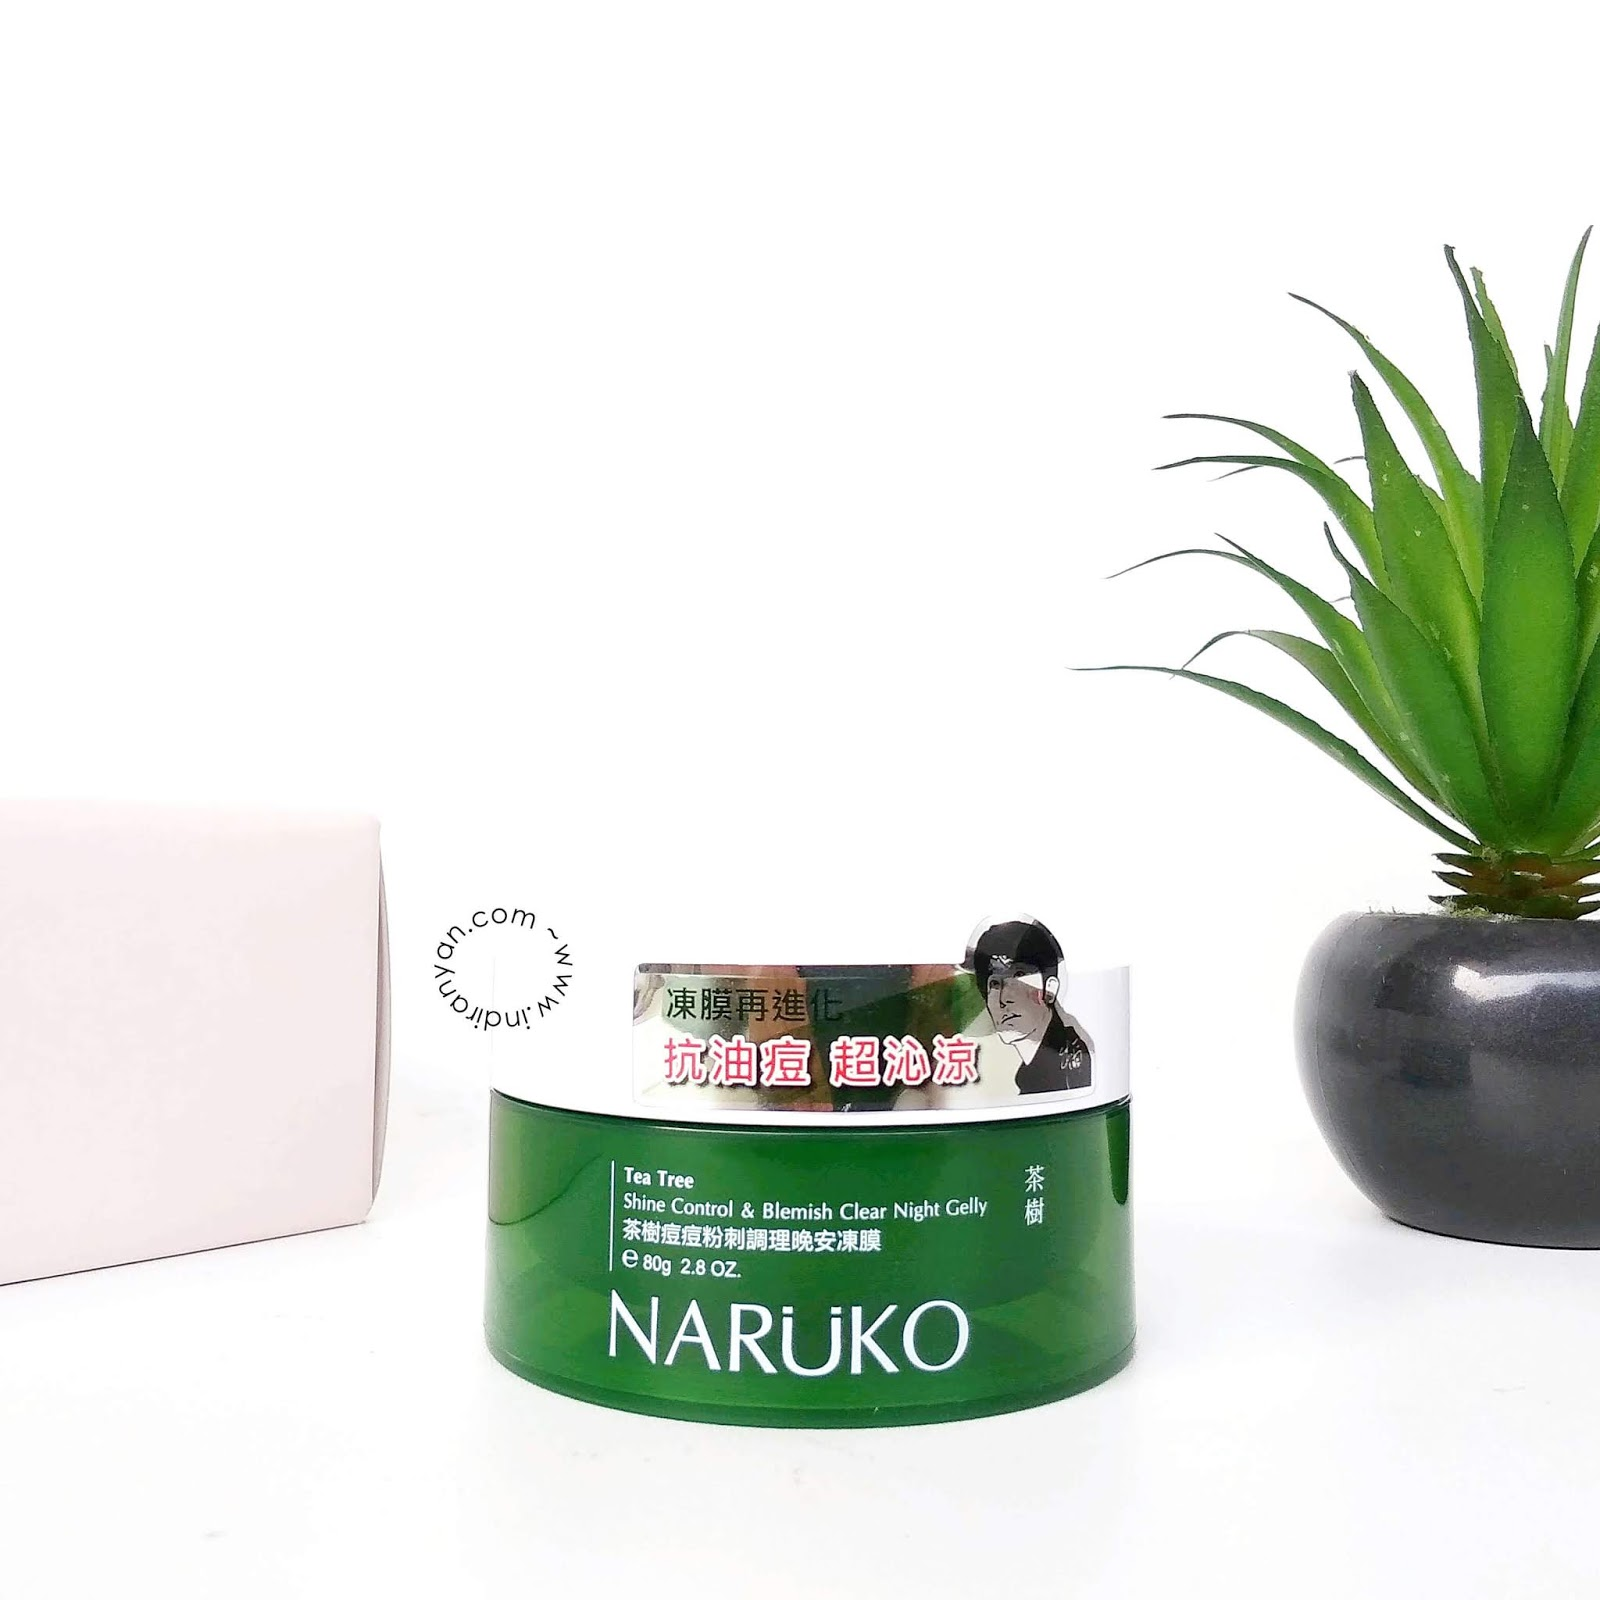 naruko-tea-tre-shine-control-blemish-clear-night-gelly